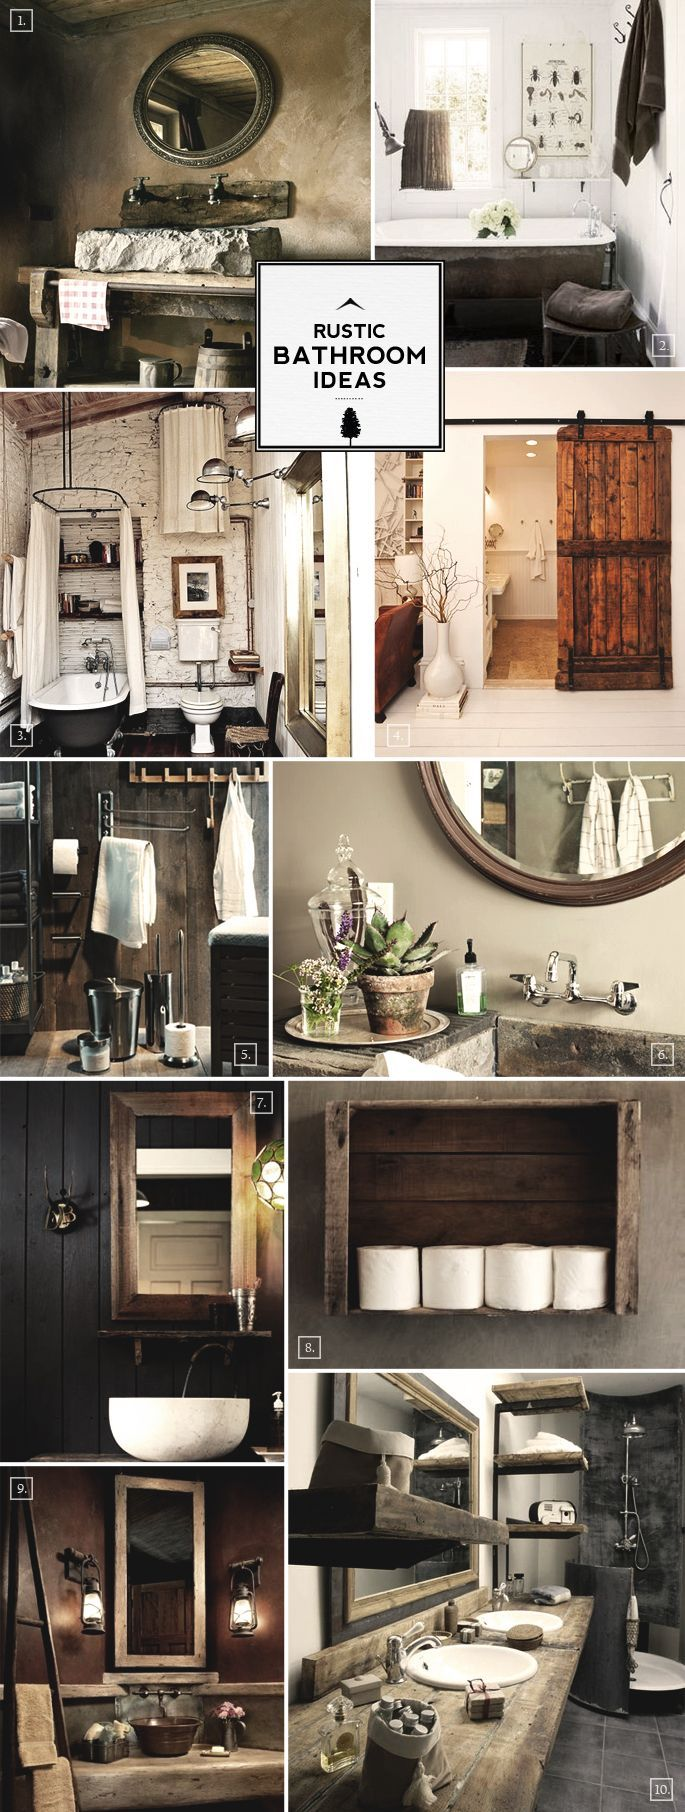 Rustic Bathroom Ideas and Decor Tips | Home Tree Atlas